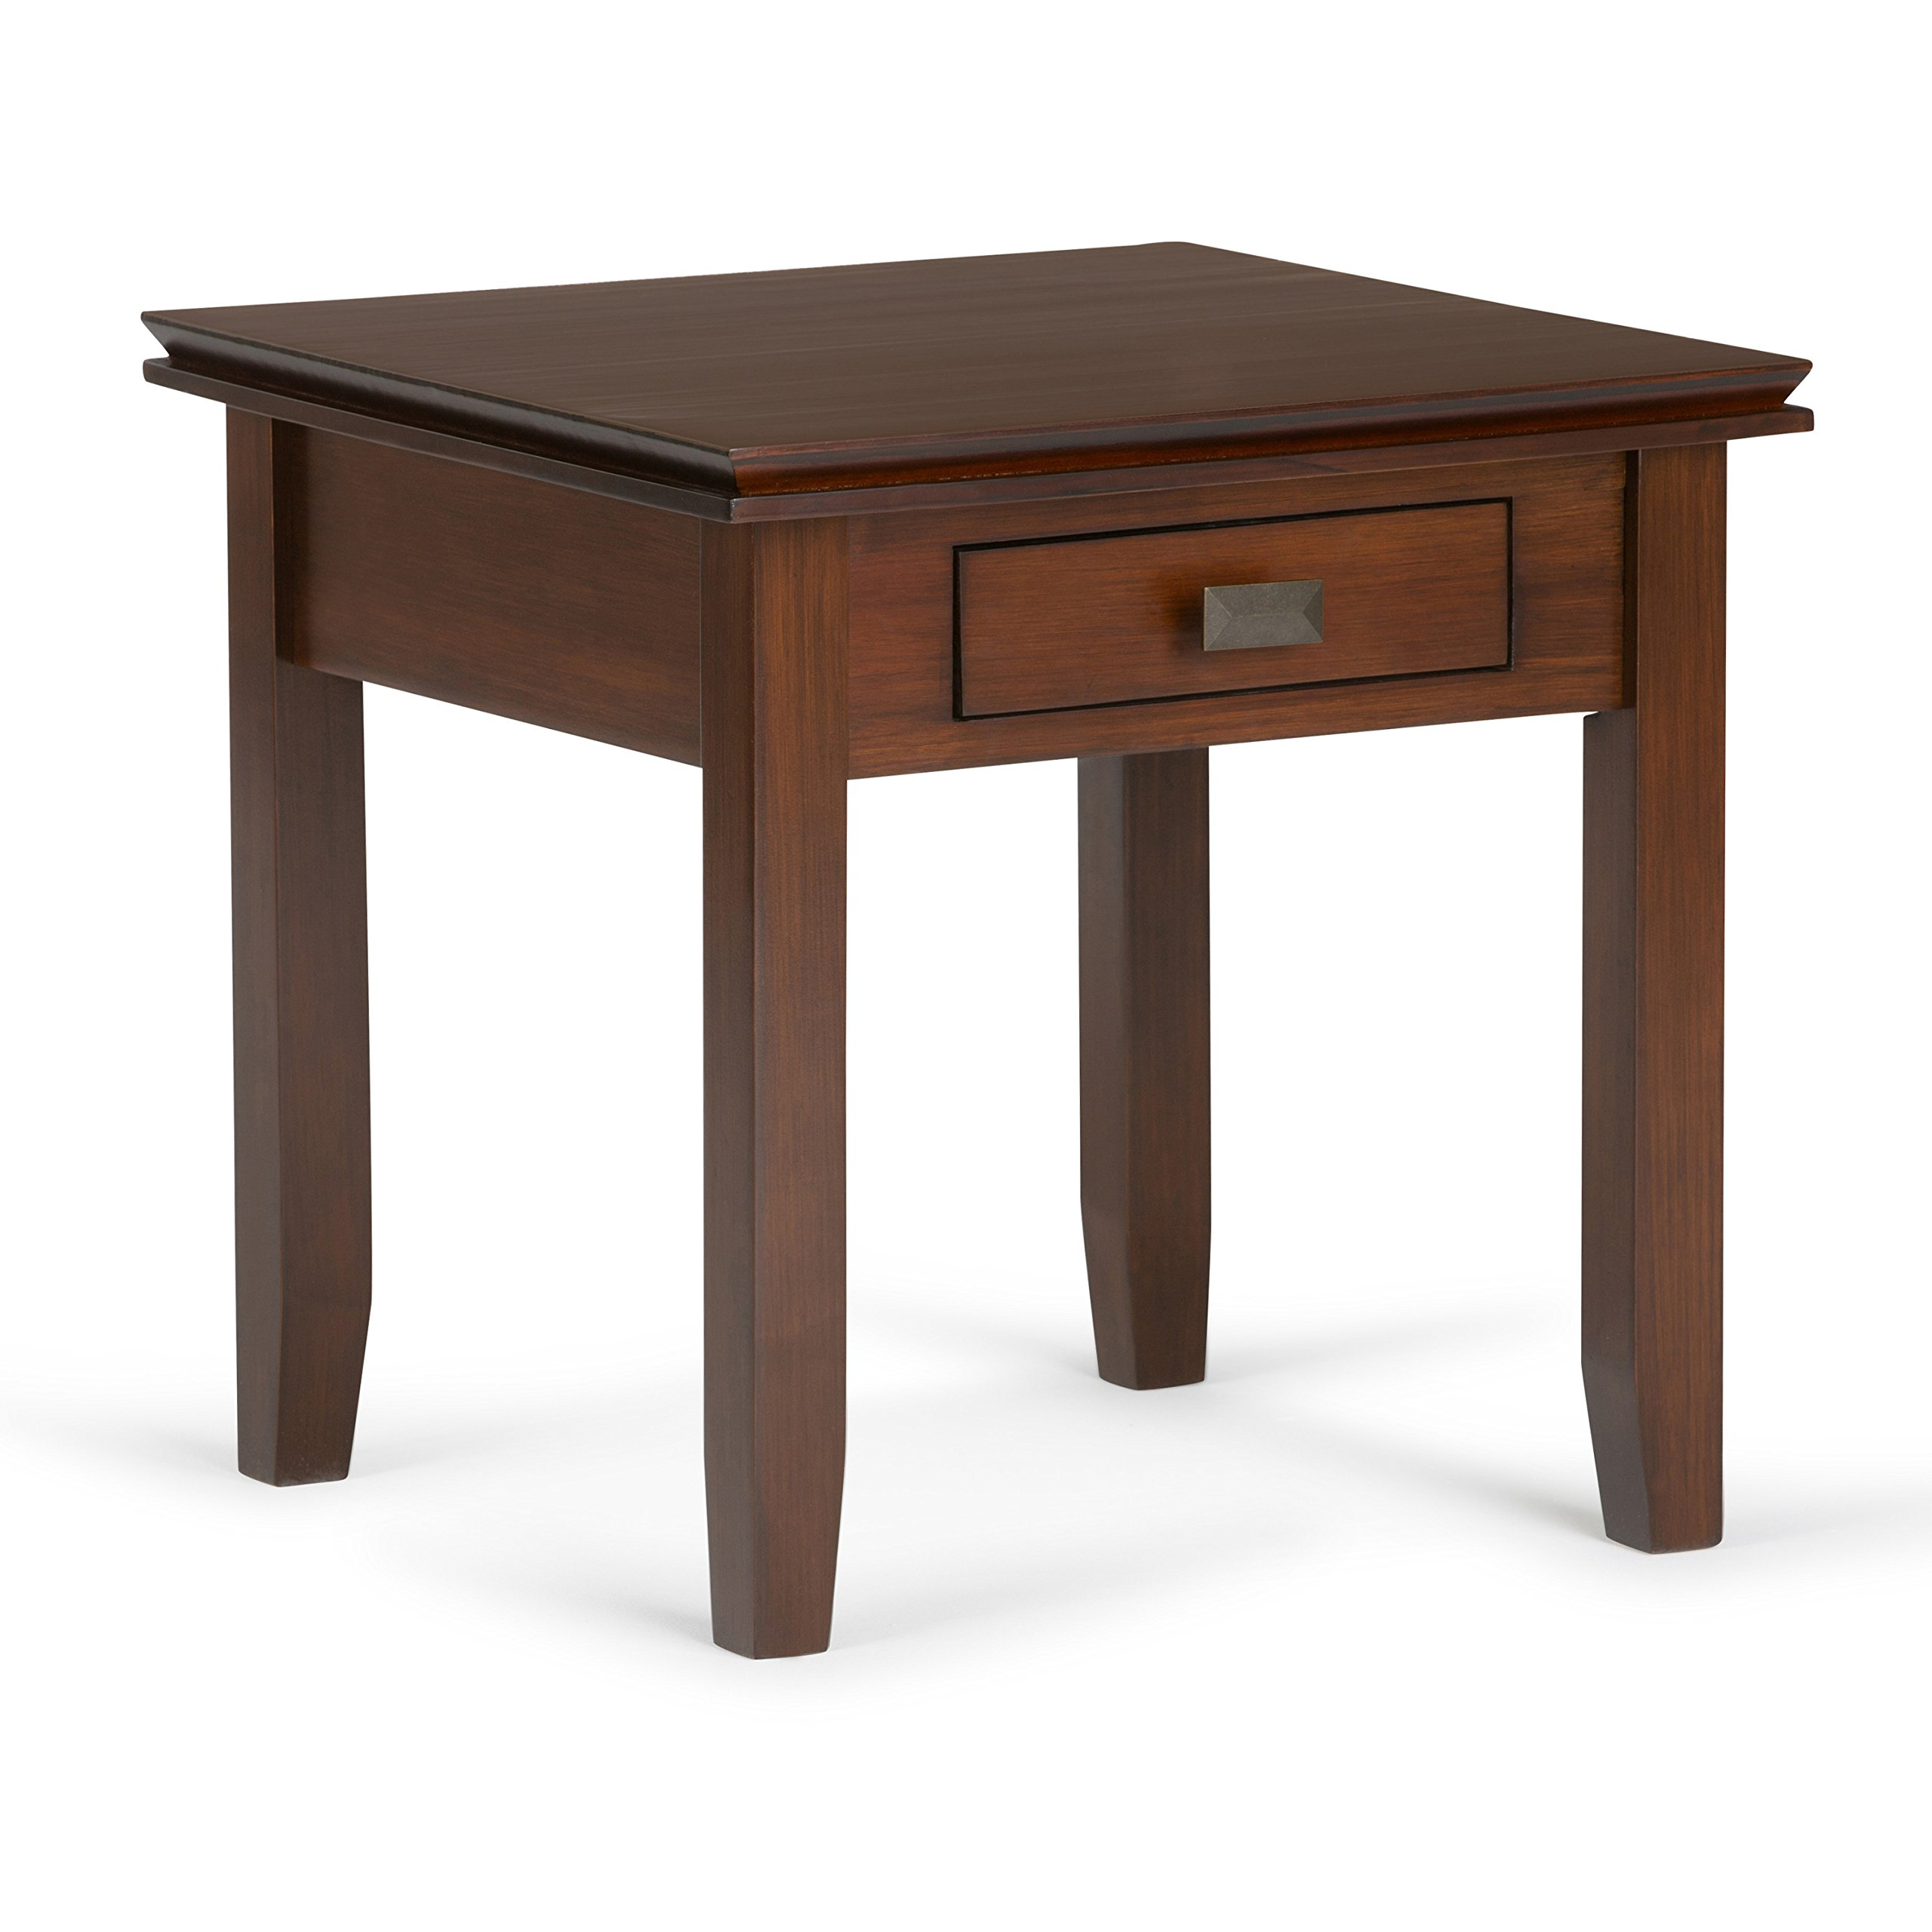 Simpli Home Artisan Solid Wood End Table, Medium Auburn Brown